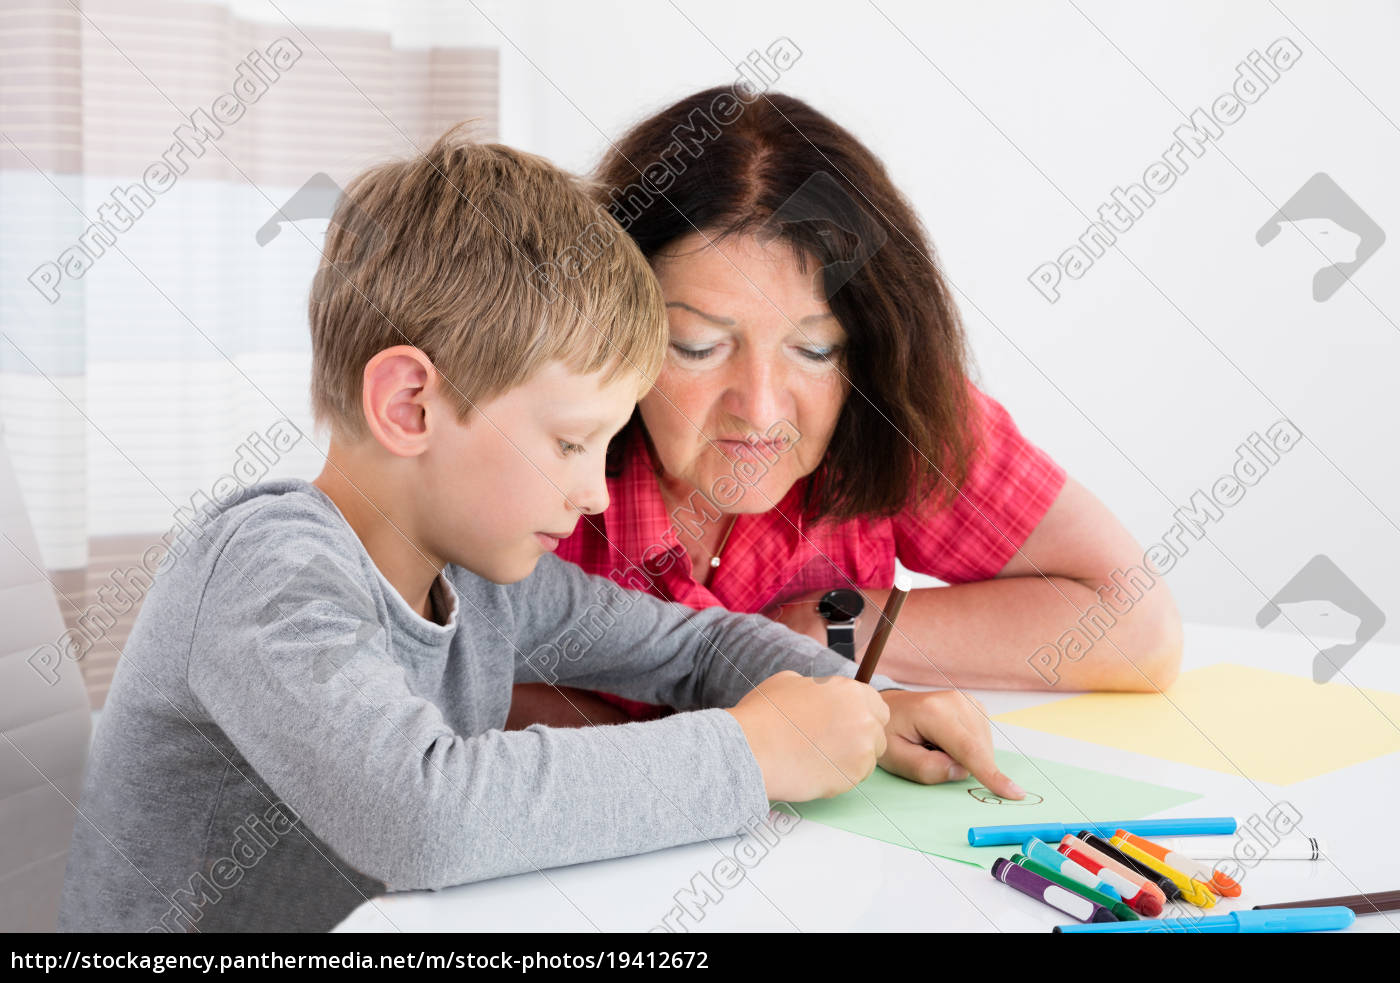 grandson, drawing, on, colorful, paper, at - 19412672